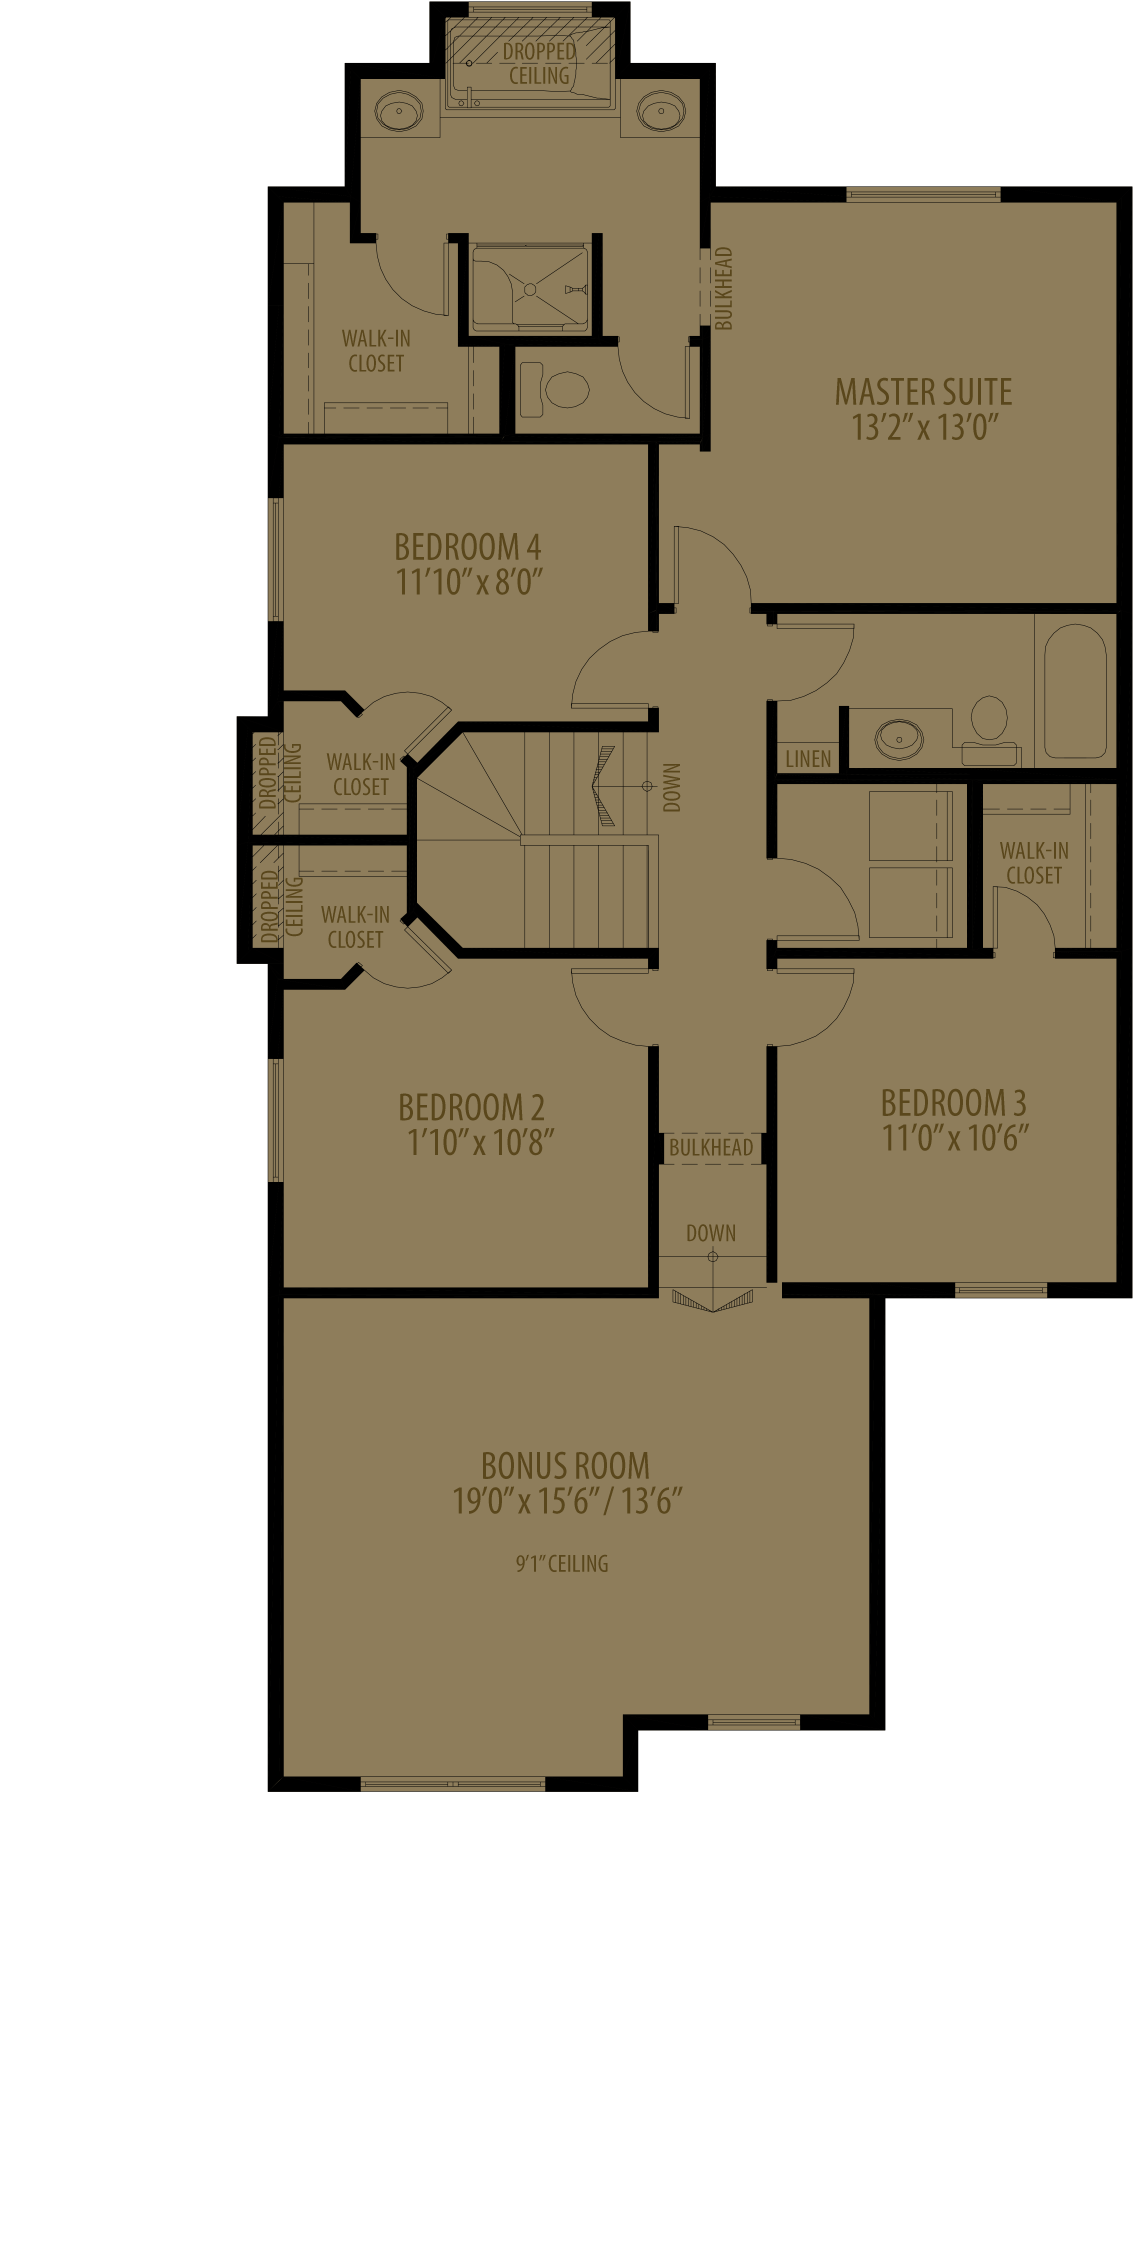 4Th Bedroom With Revised Ensuite (Adds 61 Sq Ft)